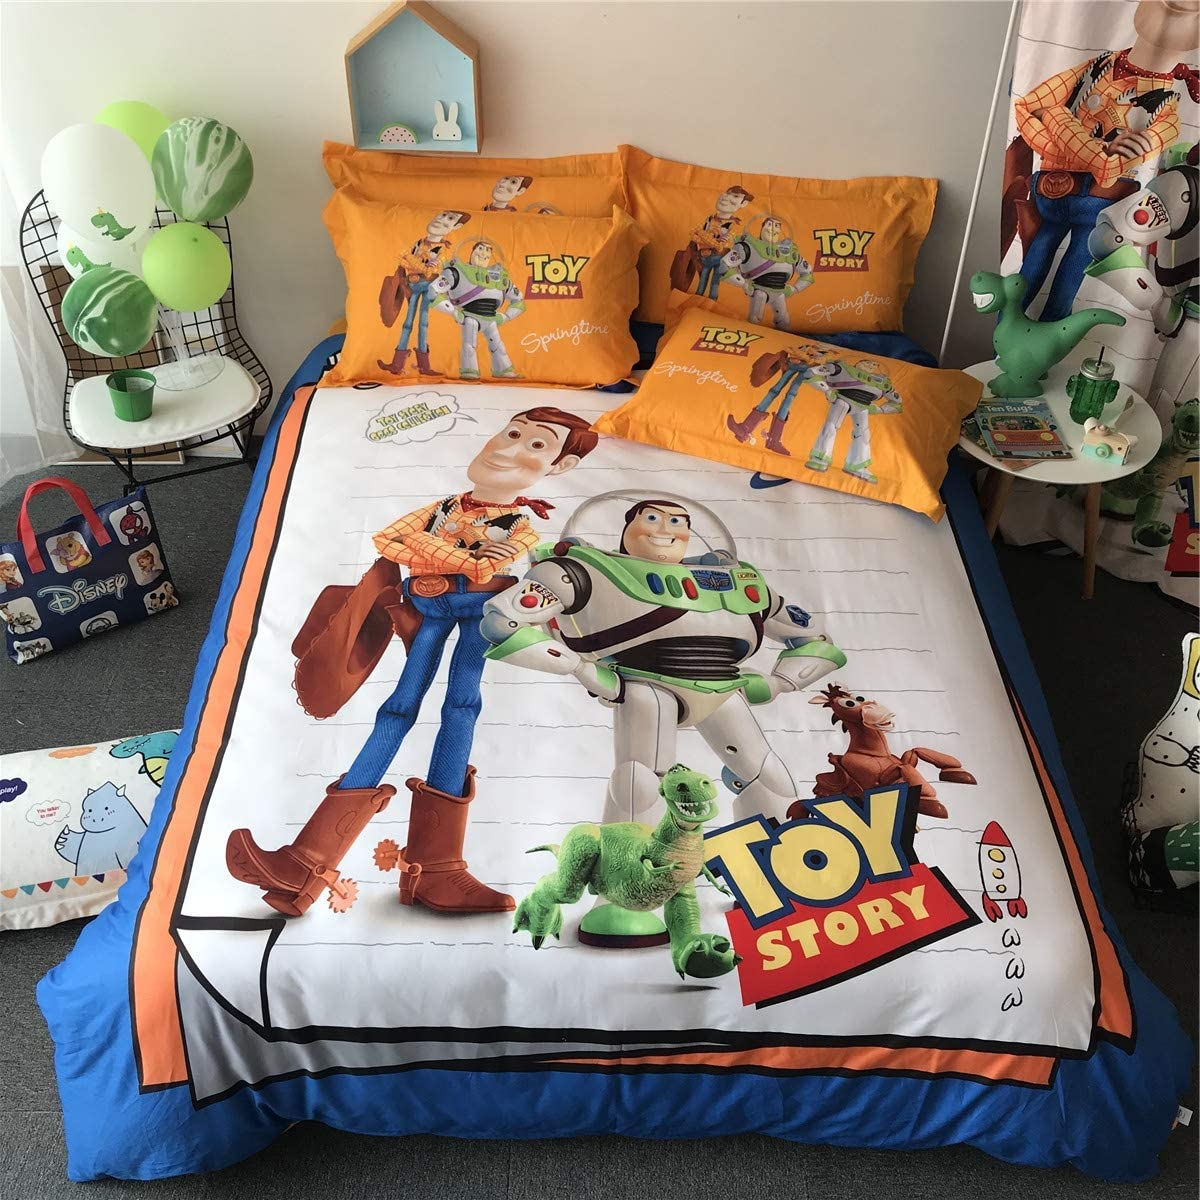 "Cenarious Toy Story Woody Buzz Lightyear Cartoon Style Duvet Cover Set Cotton Flat Sheet Bed Cover - 3Pcs Bedding Set - Twin Flat Sheet Set - 61""x80"" - 155x205cm"